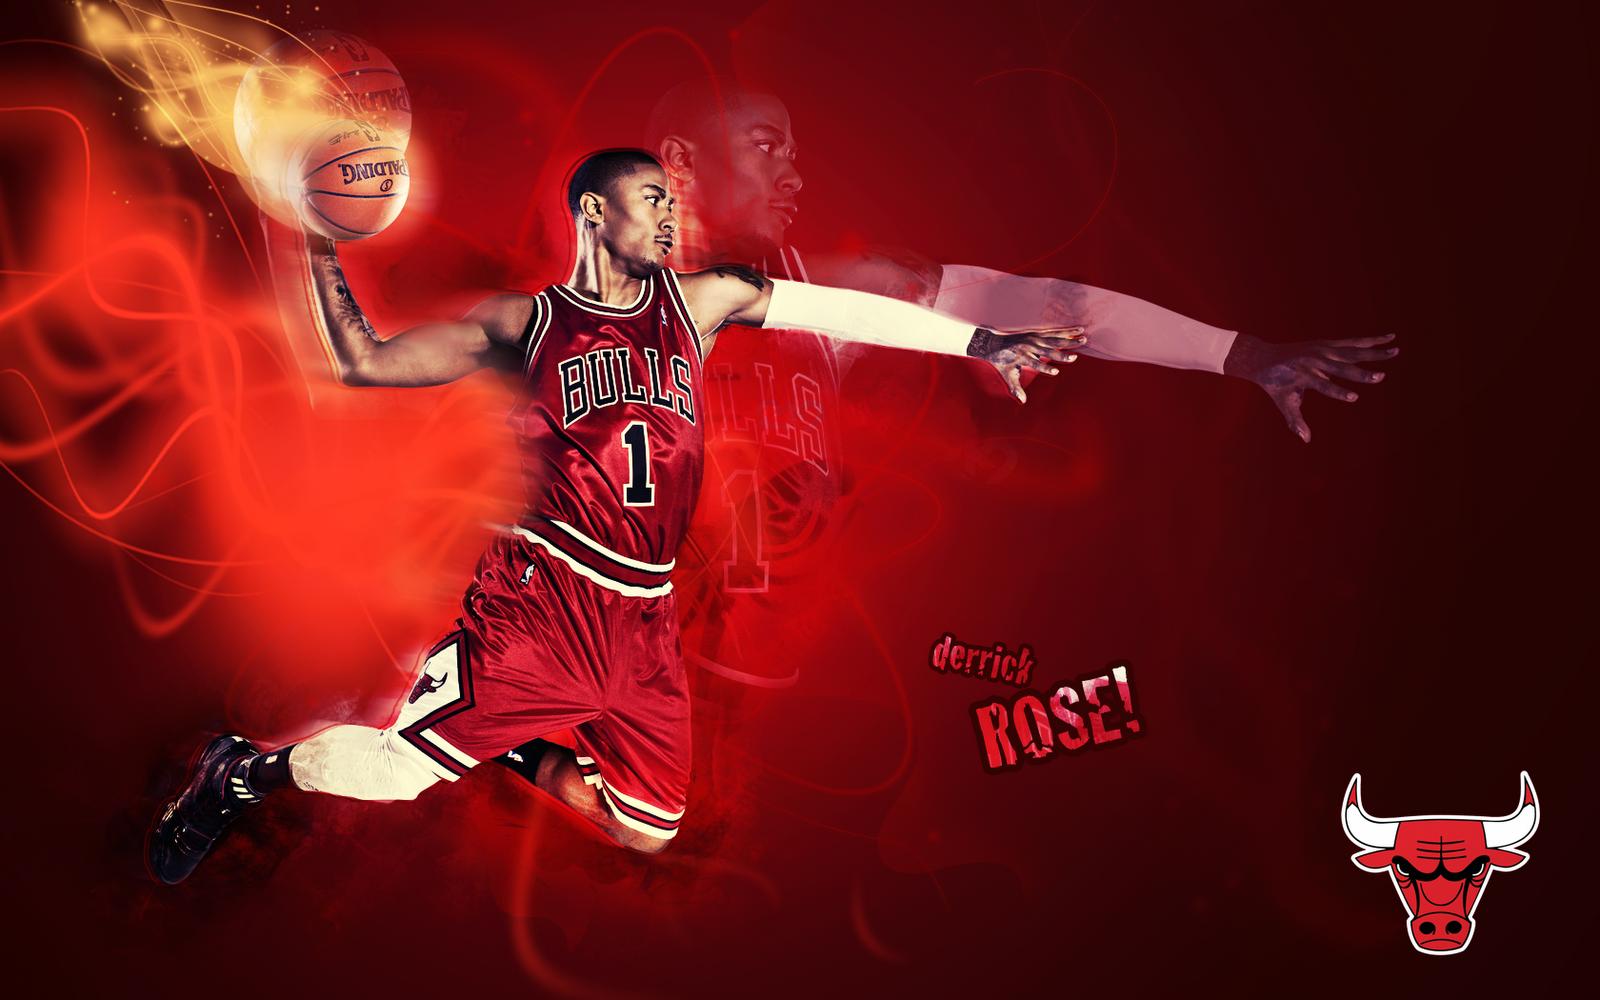 Derrick Rose basketball wallpapers NBA Wallpapers Basket Ball 1600x1000